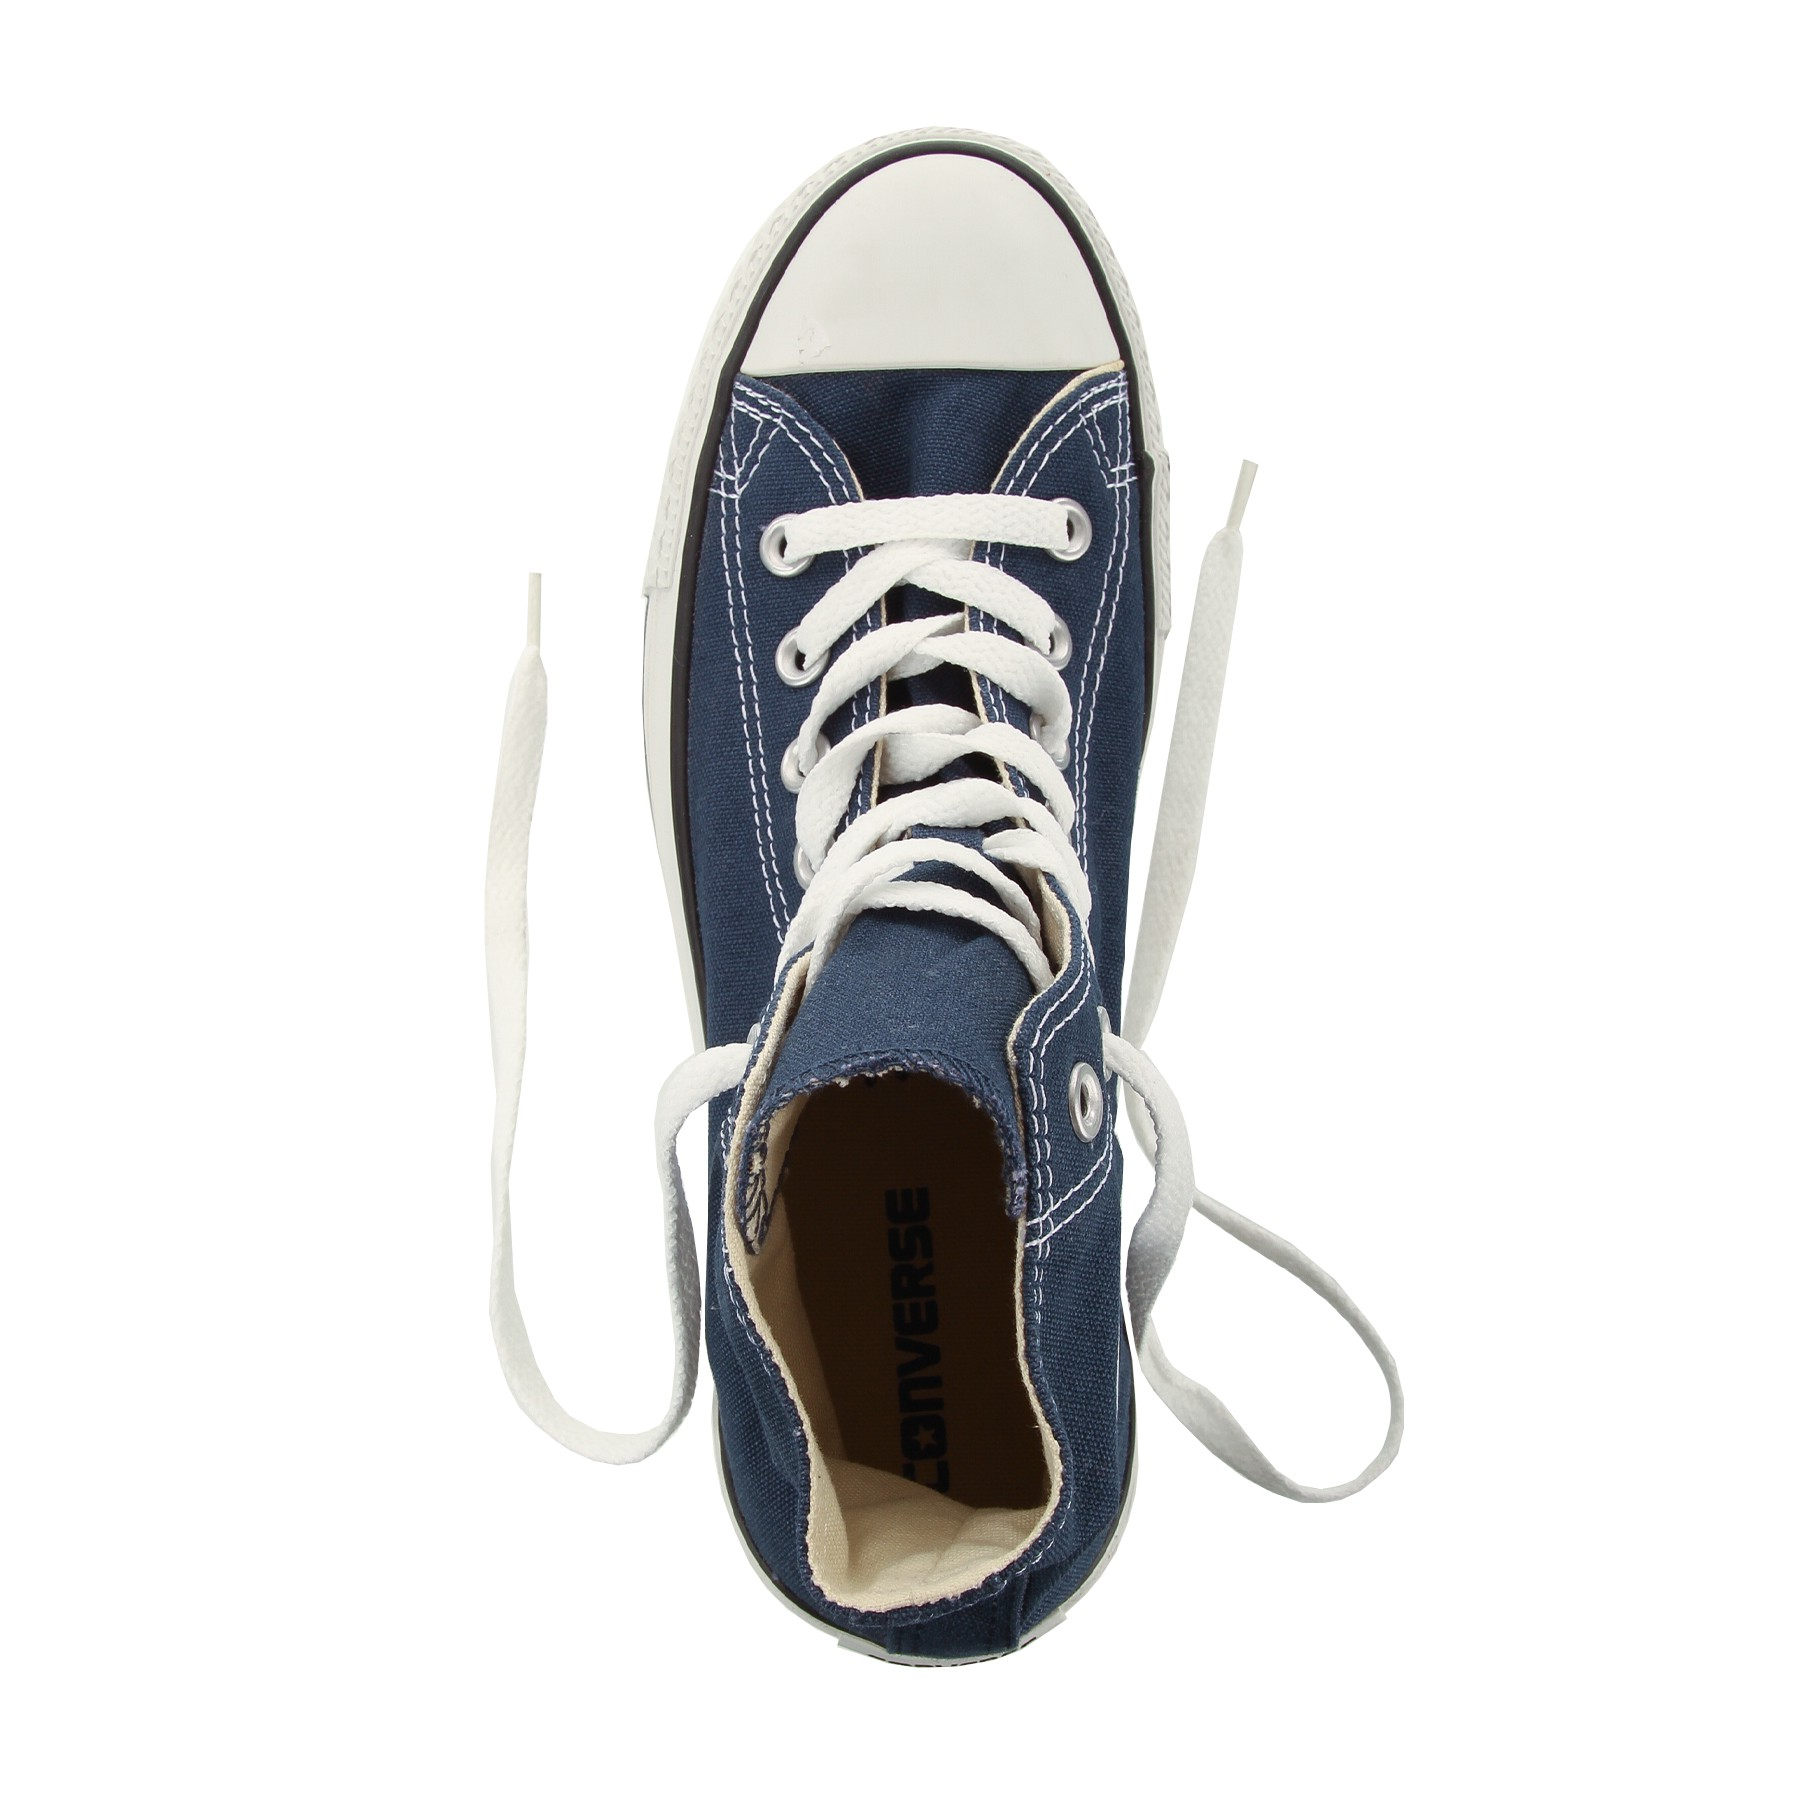 M9622 CT CHUCK TAYLOR AS CORE/NAVY Bild https://cdn03.plentymarkets.com/zsy4vjx32p87/item/images/4285/full/M9622-ama-04.JPG